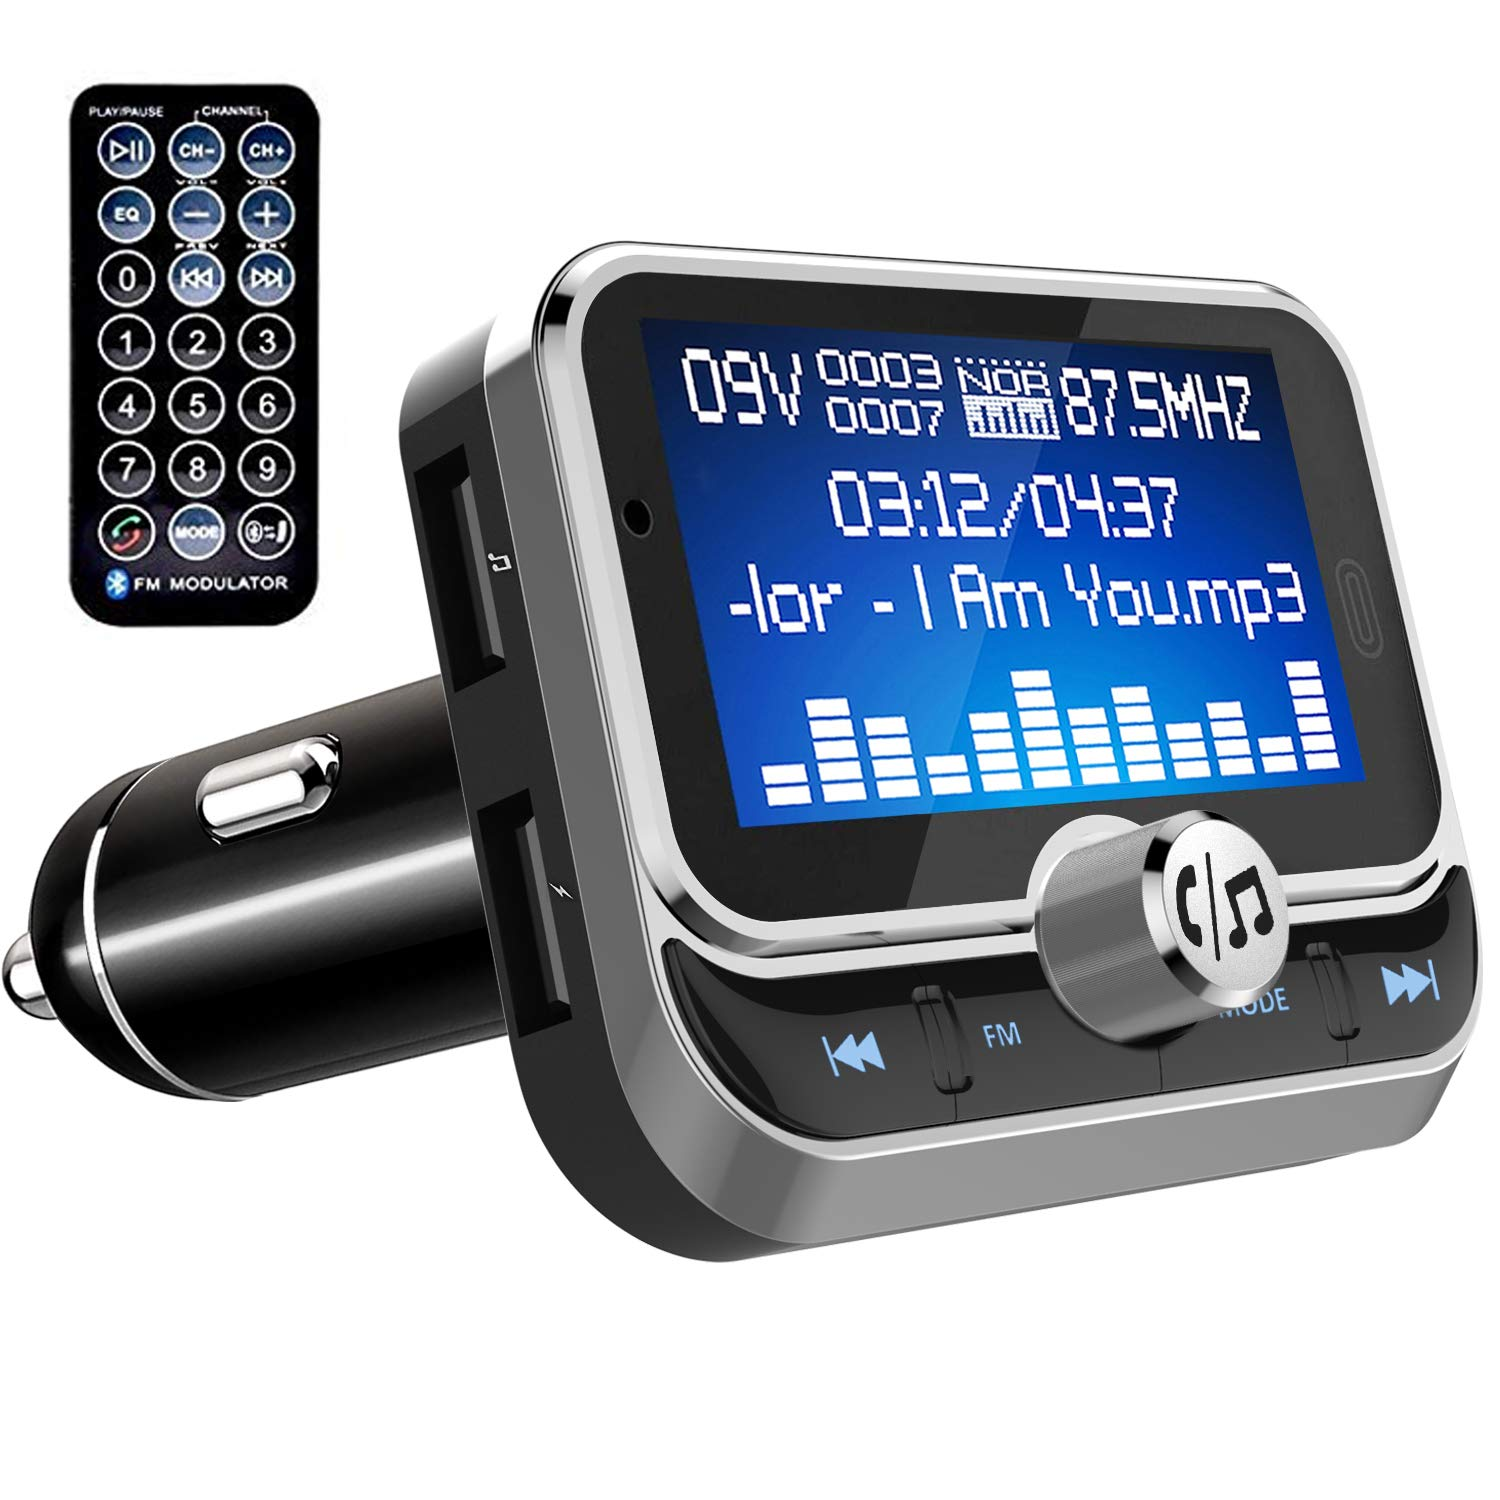 FM Transmitter Bluetooth, Zintou 1.8'' LCD Display Wireless Radio Adapter Audio Receiver Stereo Music Player Car Kit With USB Charger, Remote Control,4 Music Play Ways, Hands Free Calls,AUX Input